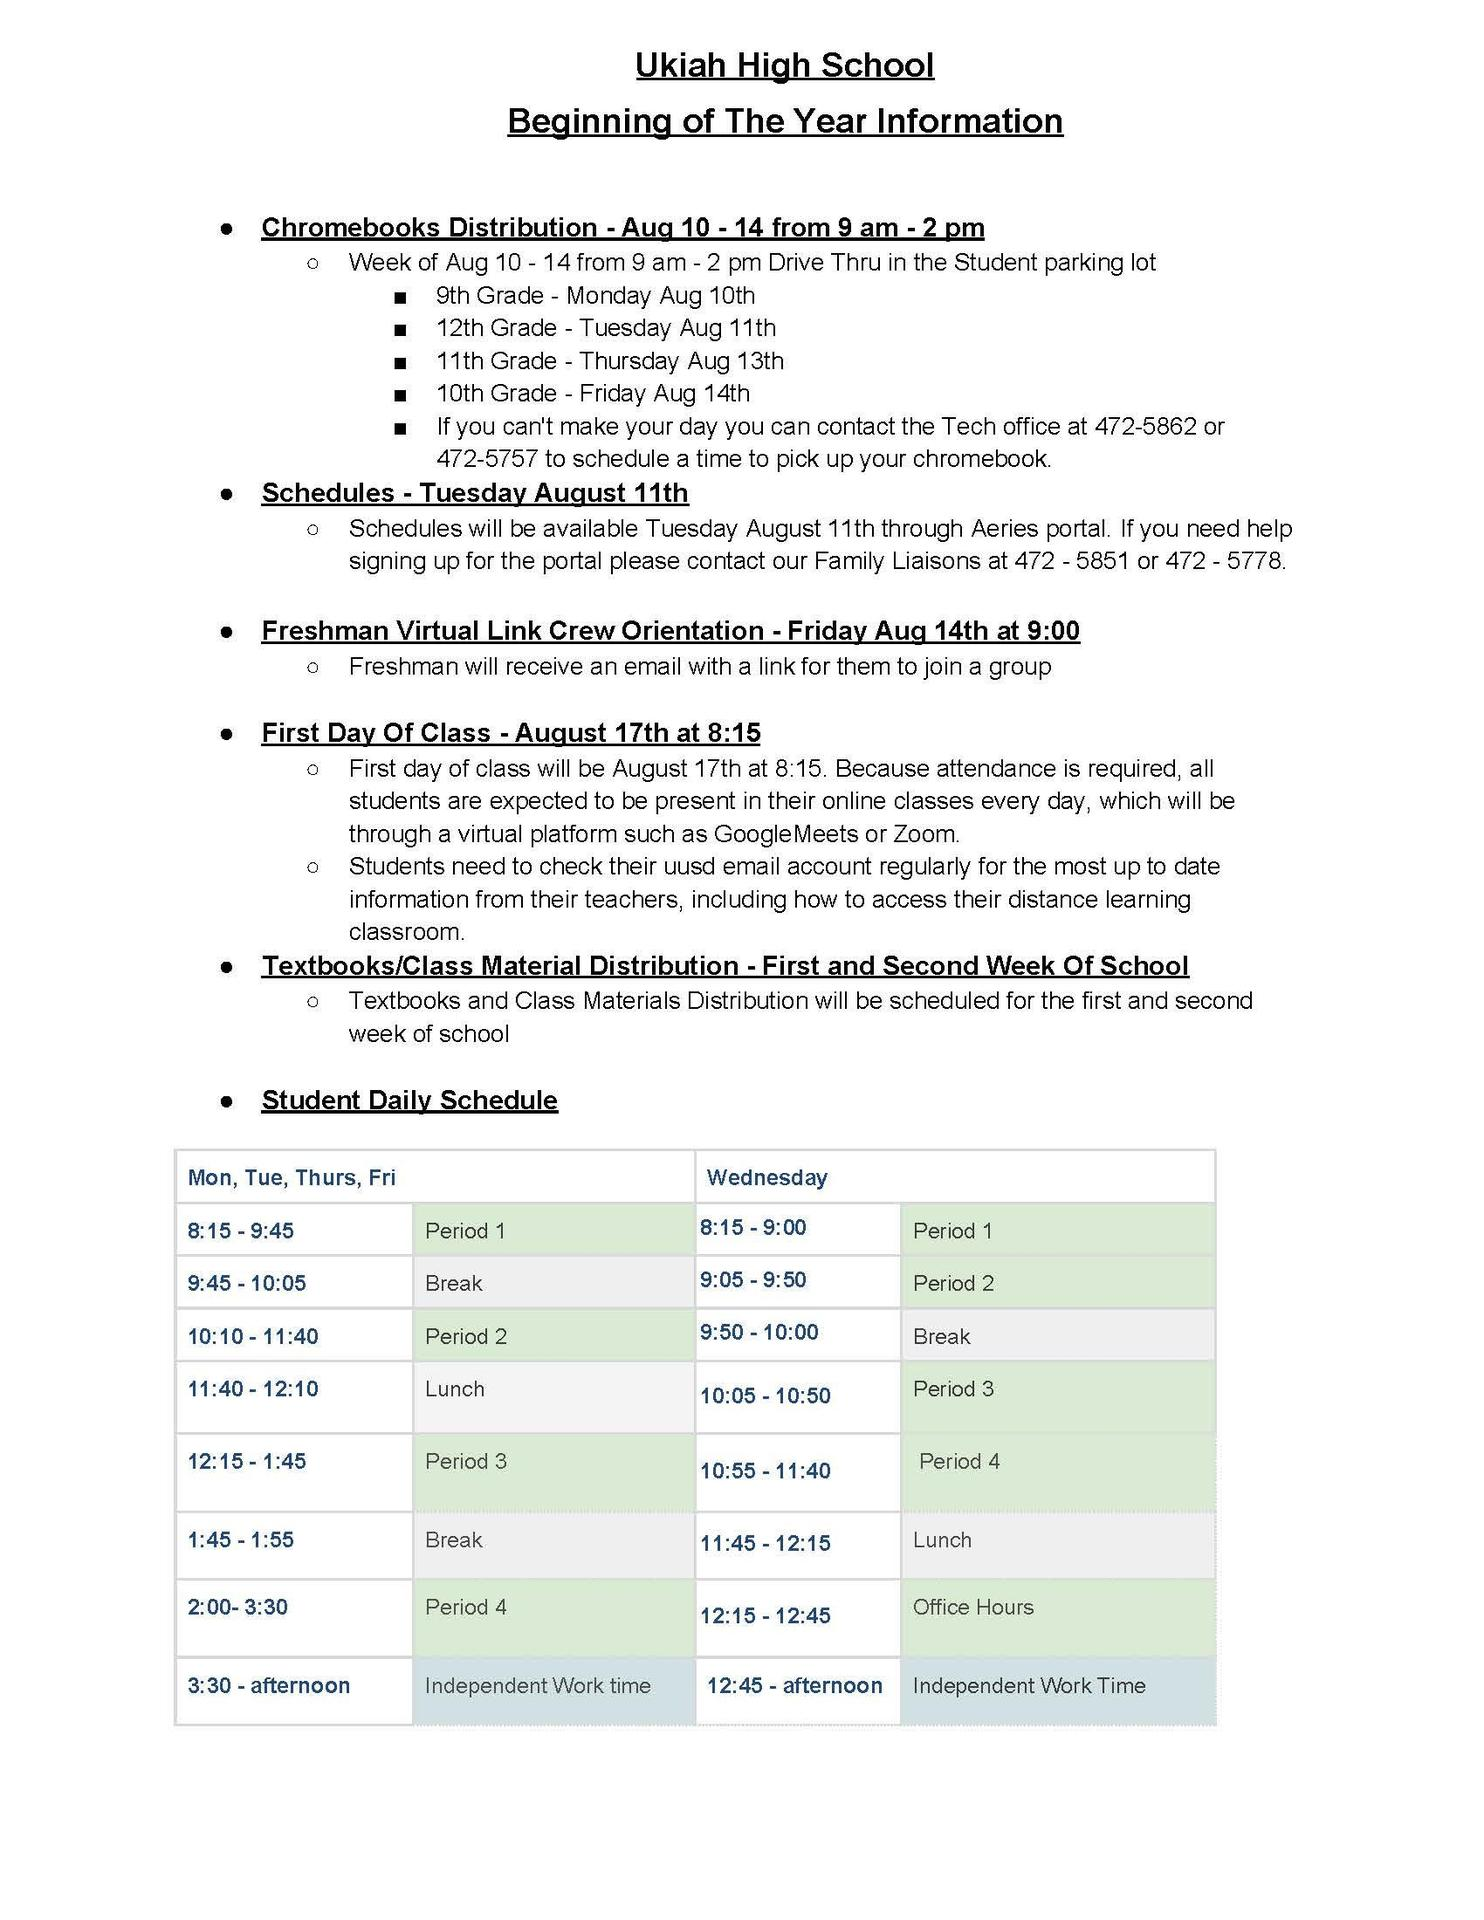 Beginning of the year Information 20-21